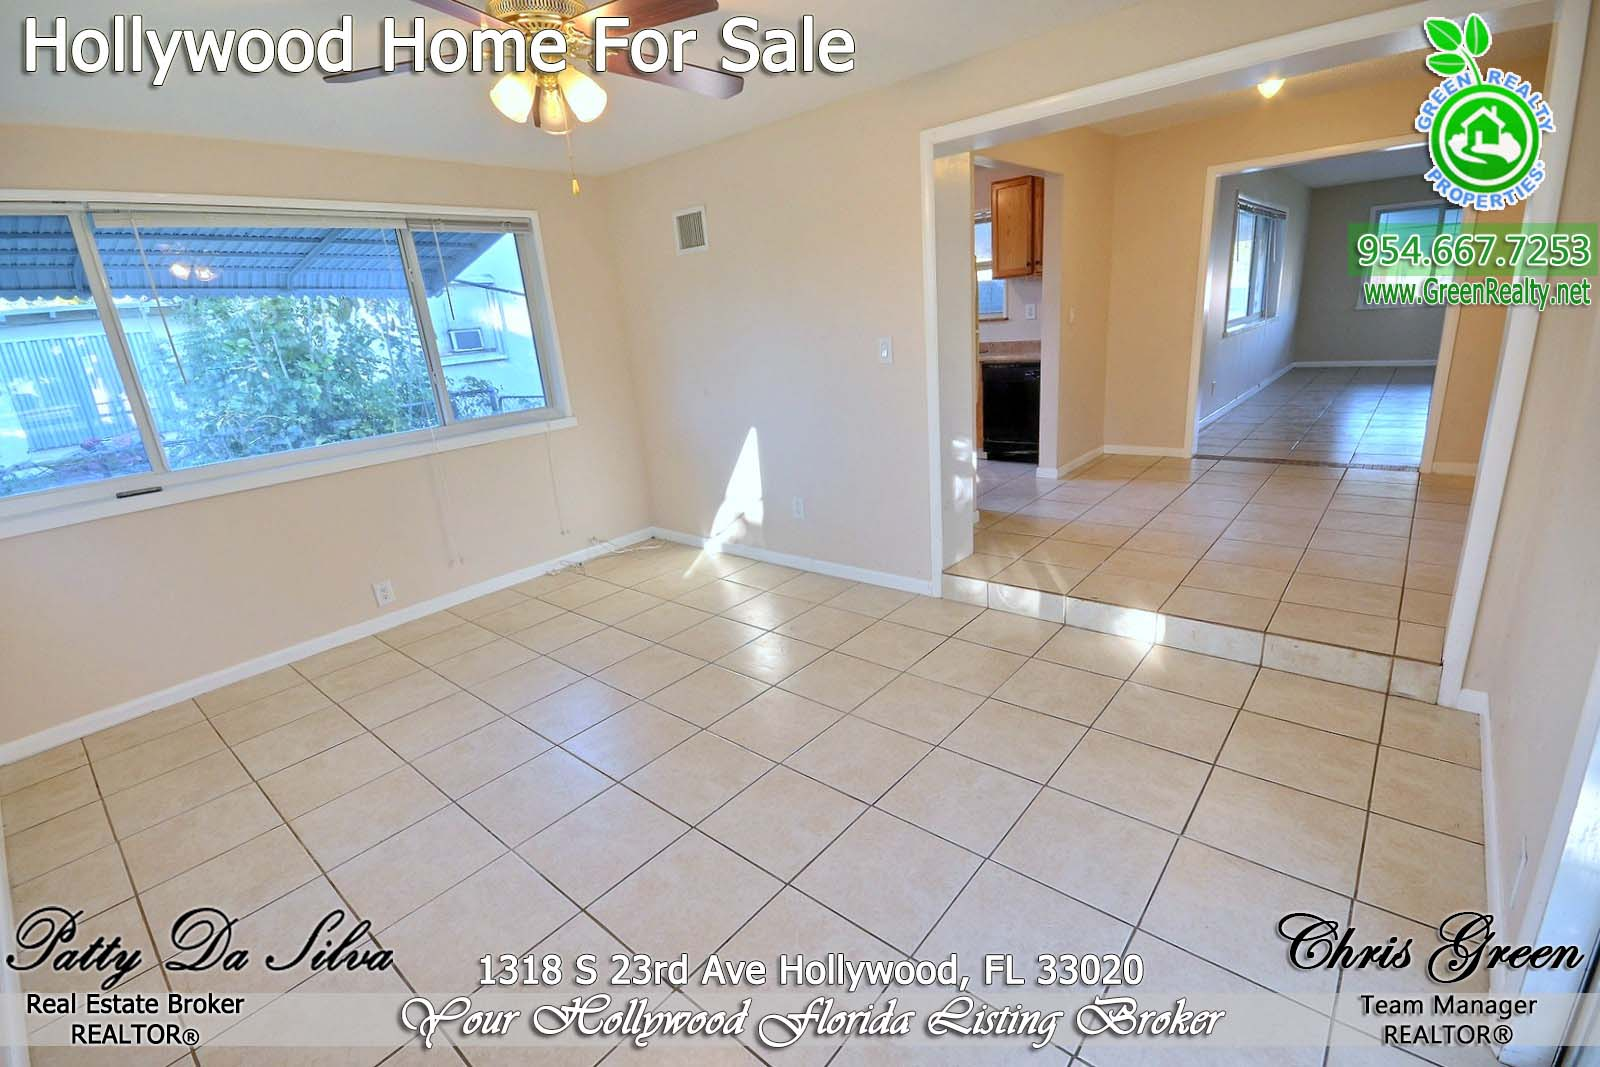 Homes for Sale in Hollywood Florida (6)